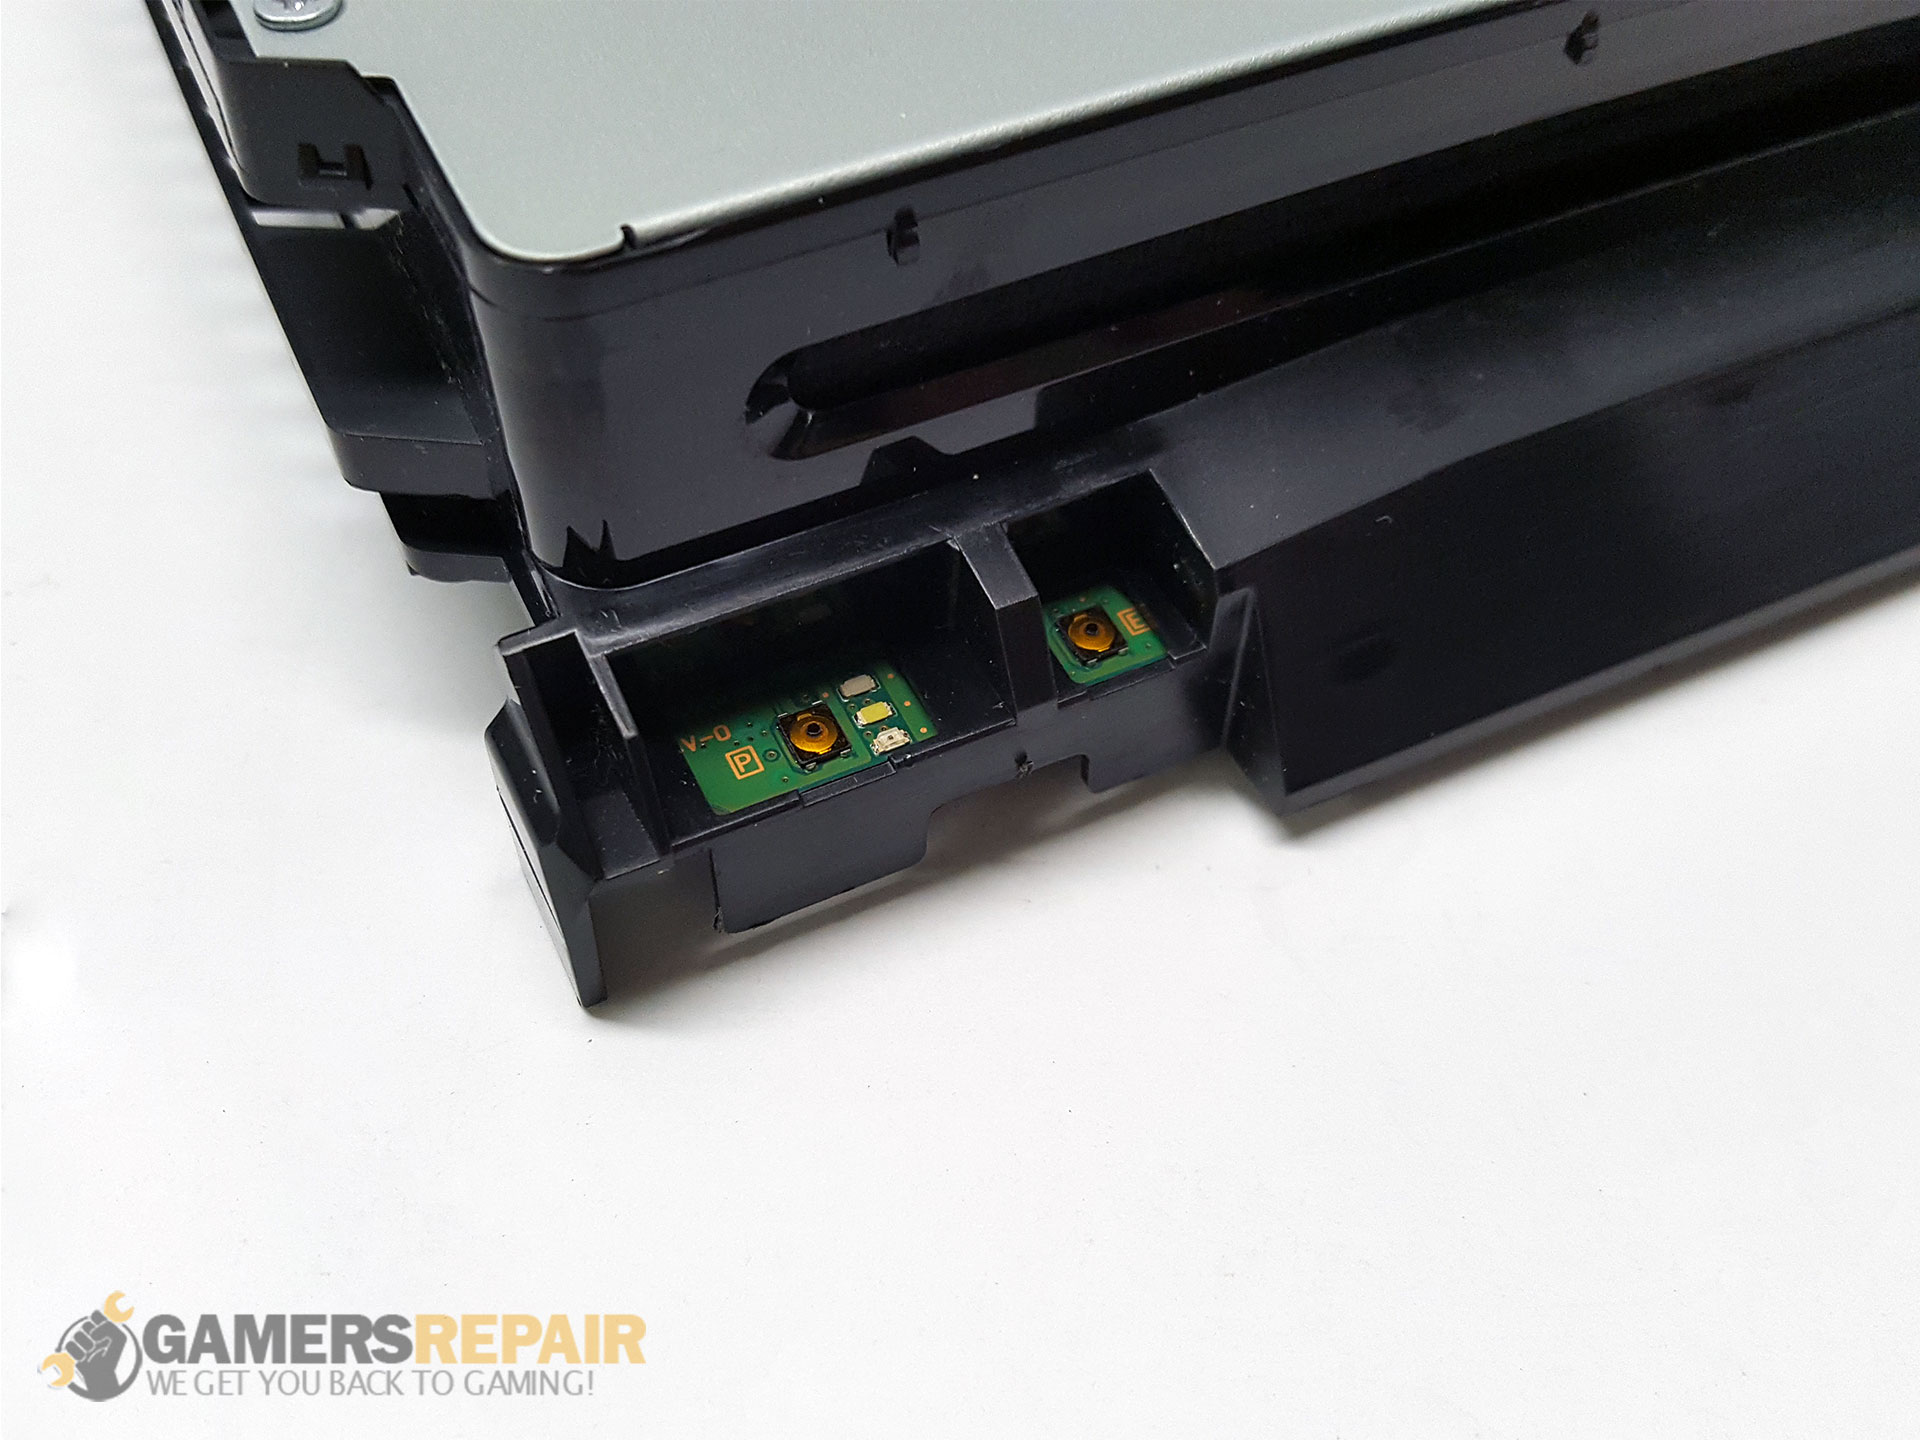 ps4-slim-power-eject-button-installed-top